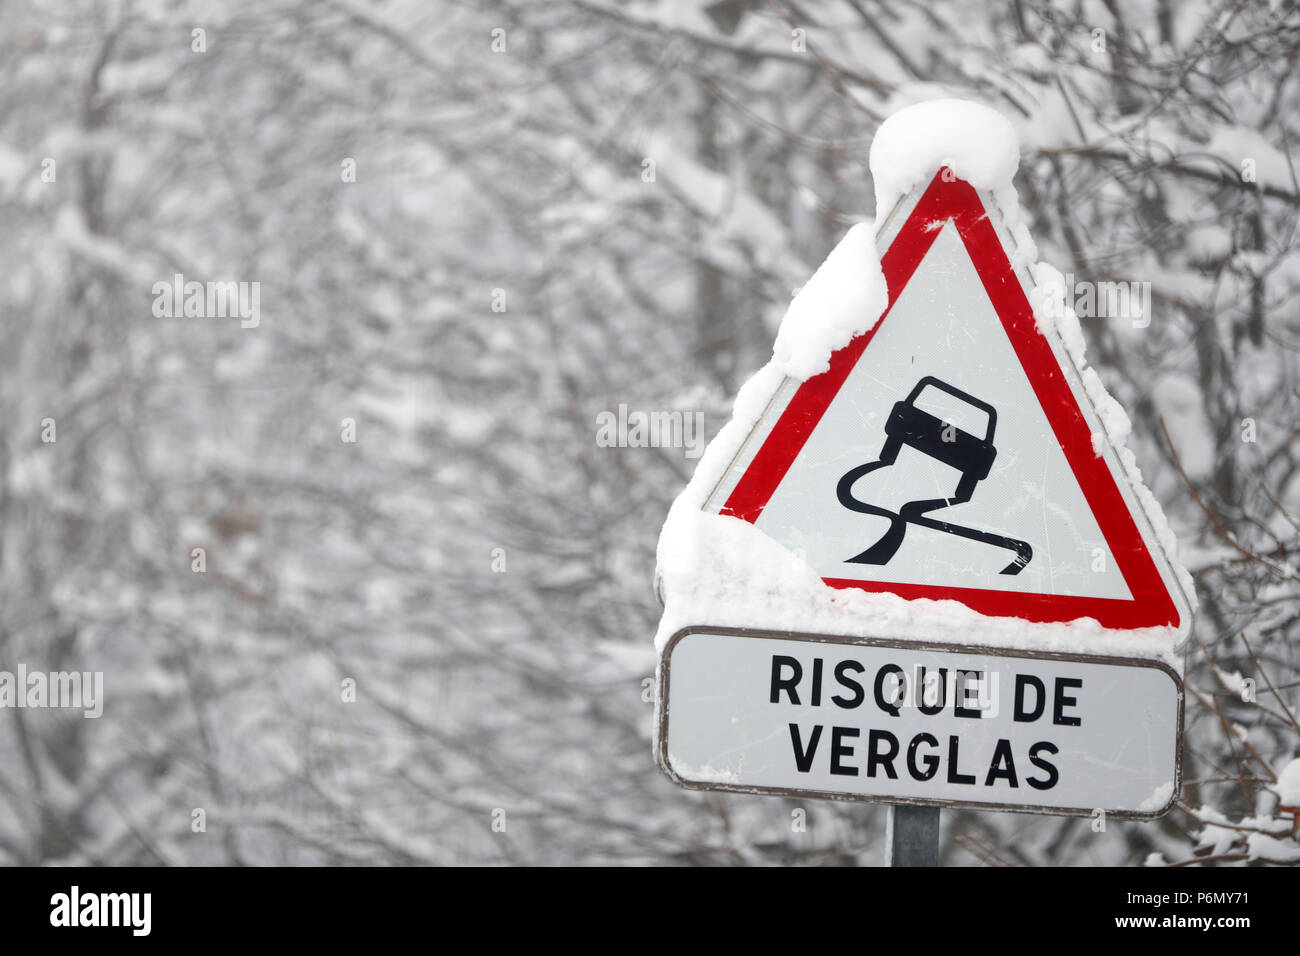 Mountain road in winter.  Road signs. Saint-Gervais. France. - Stock Image